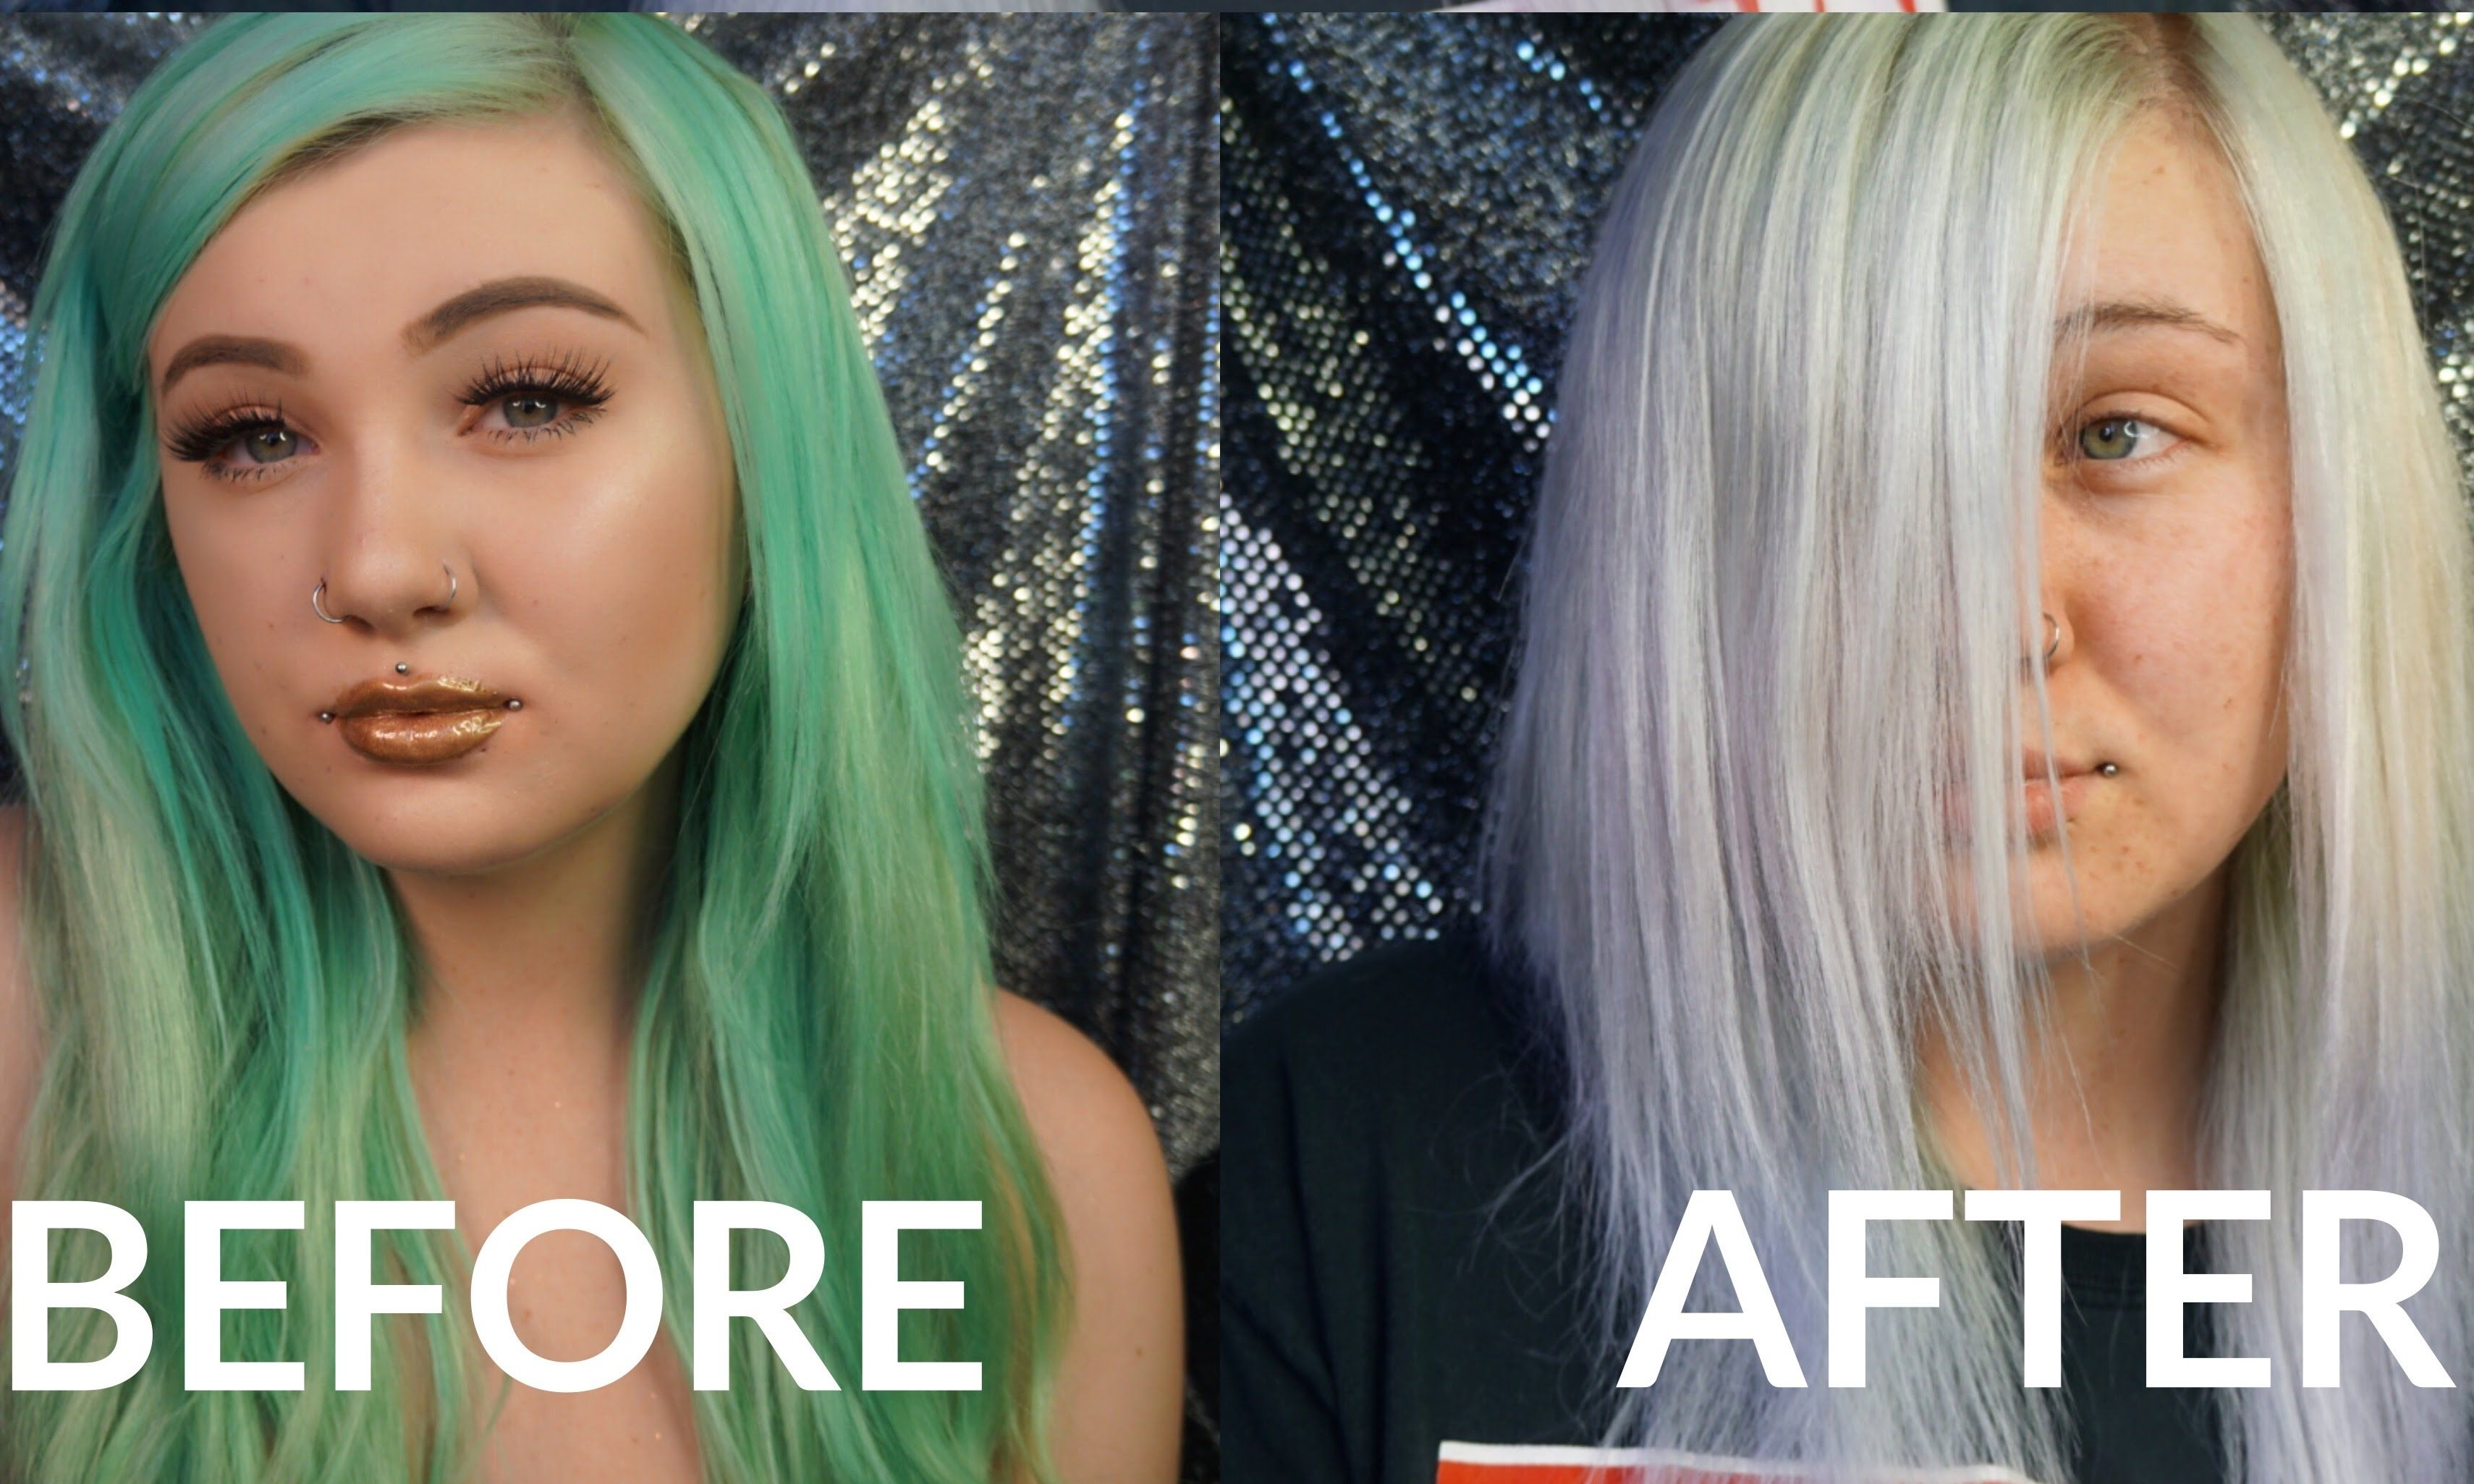 Color Oops Is A Safe Way To Remove Permanent And Semi Permanent Hair Color On Your Hair For 20 Minutes 20 Minutes O Hair Color Remover Hair Color Color Oops